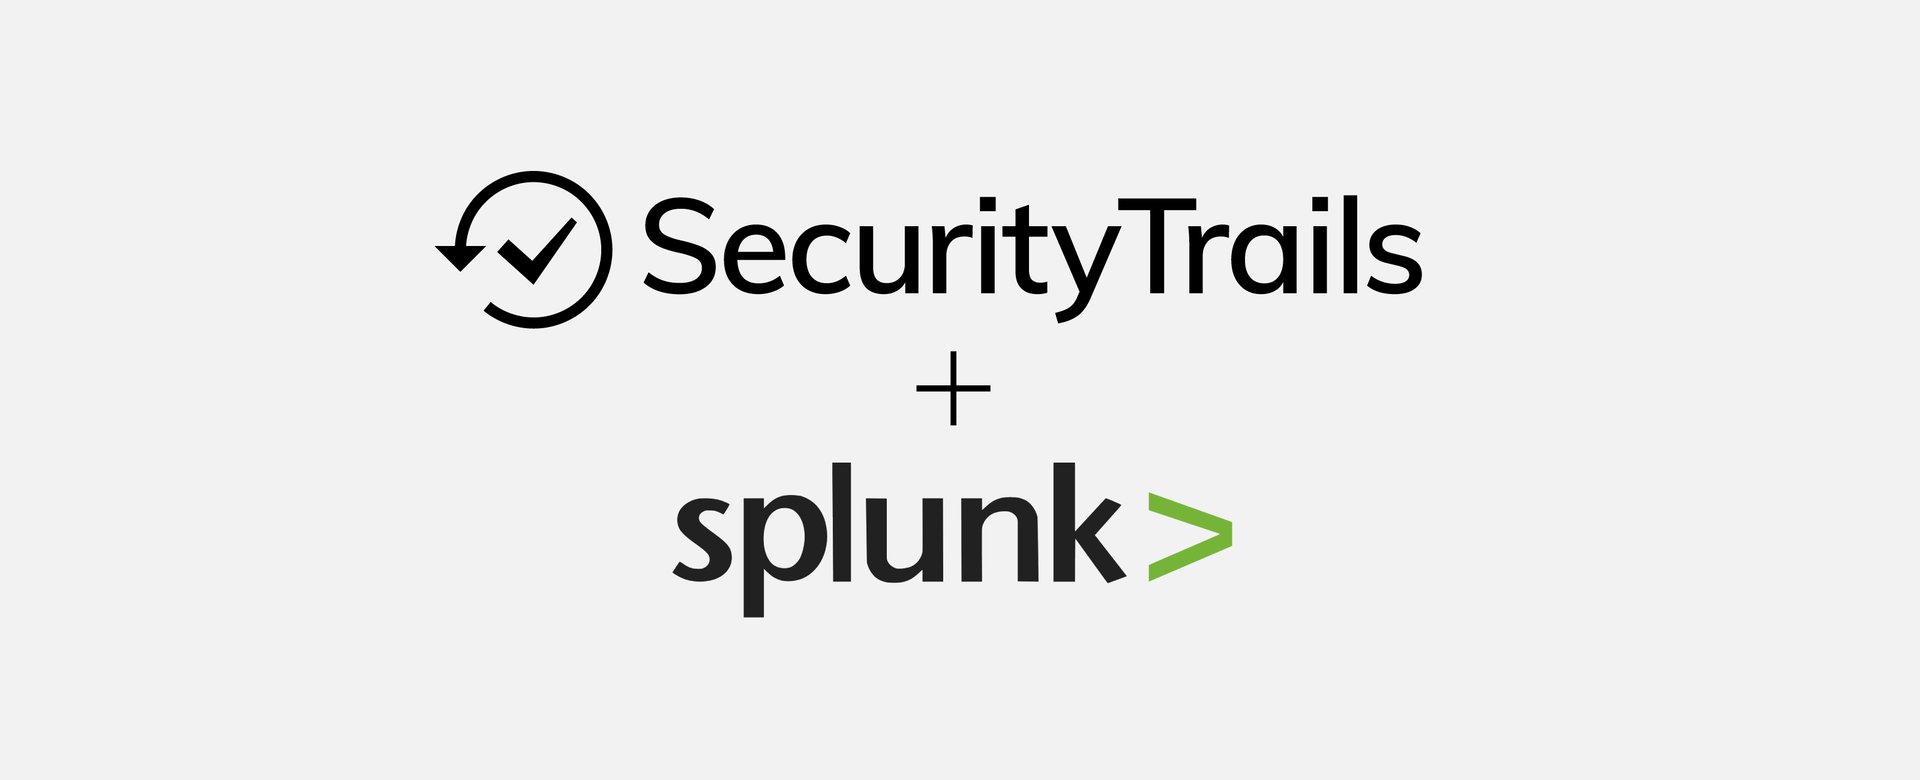 SecurityTrails Add-On for Splunk